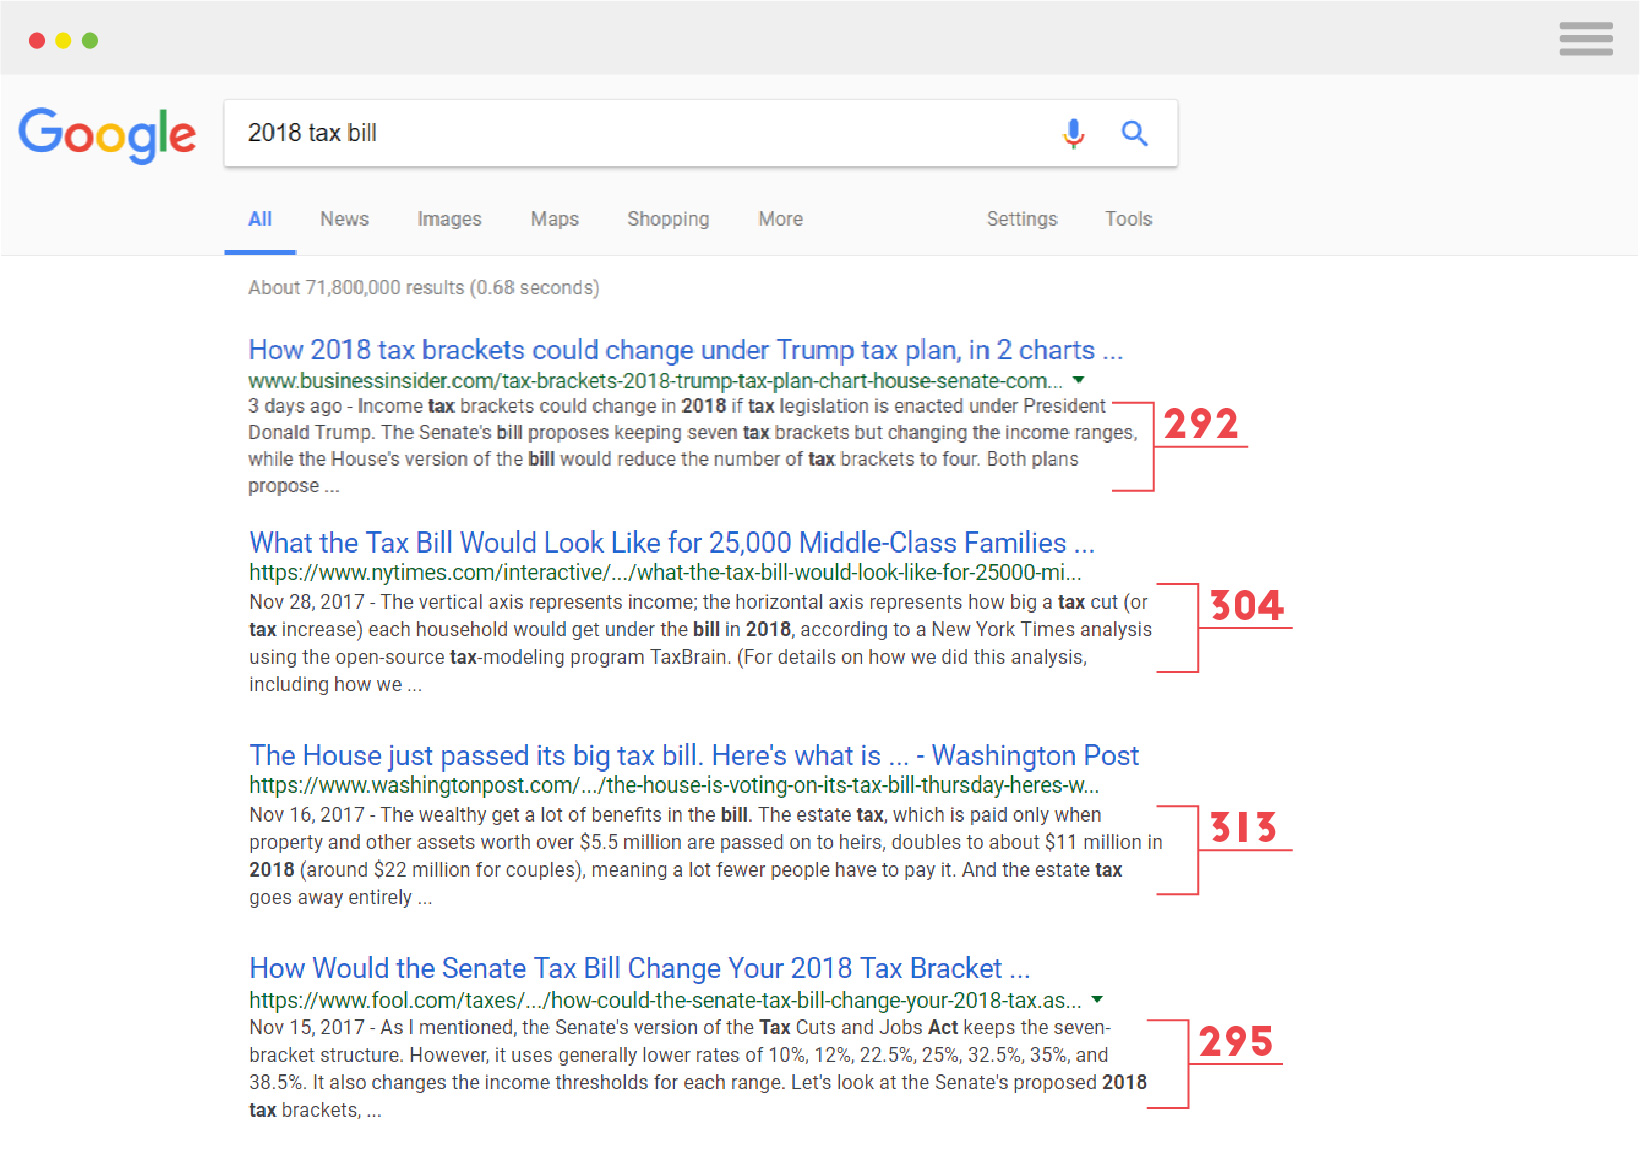 Effect on Search